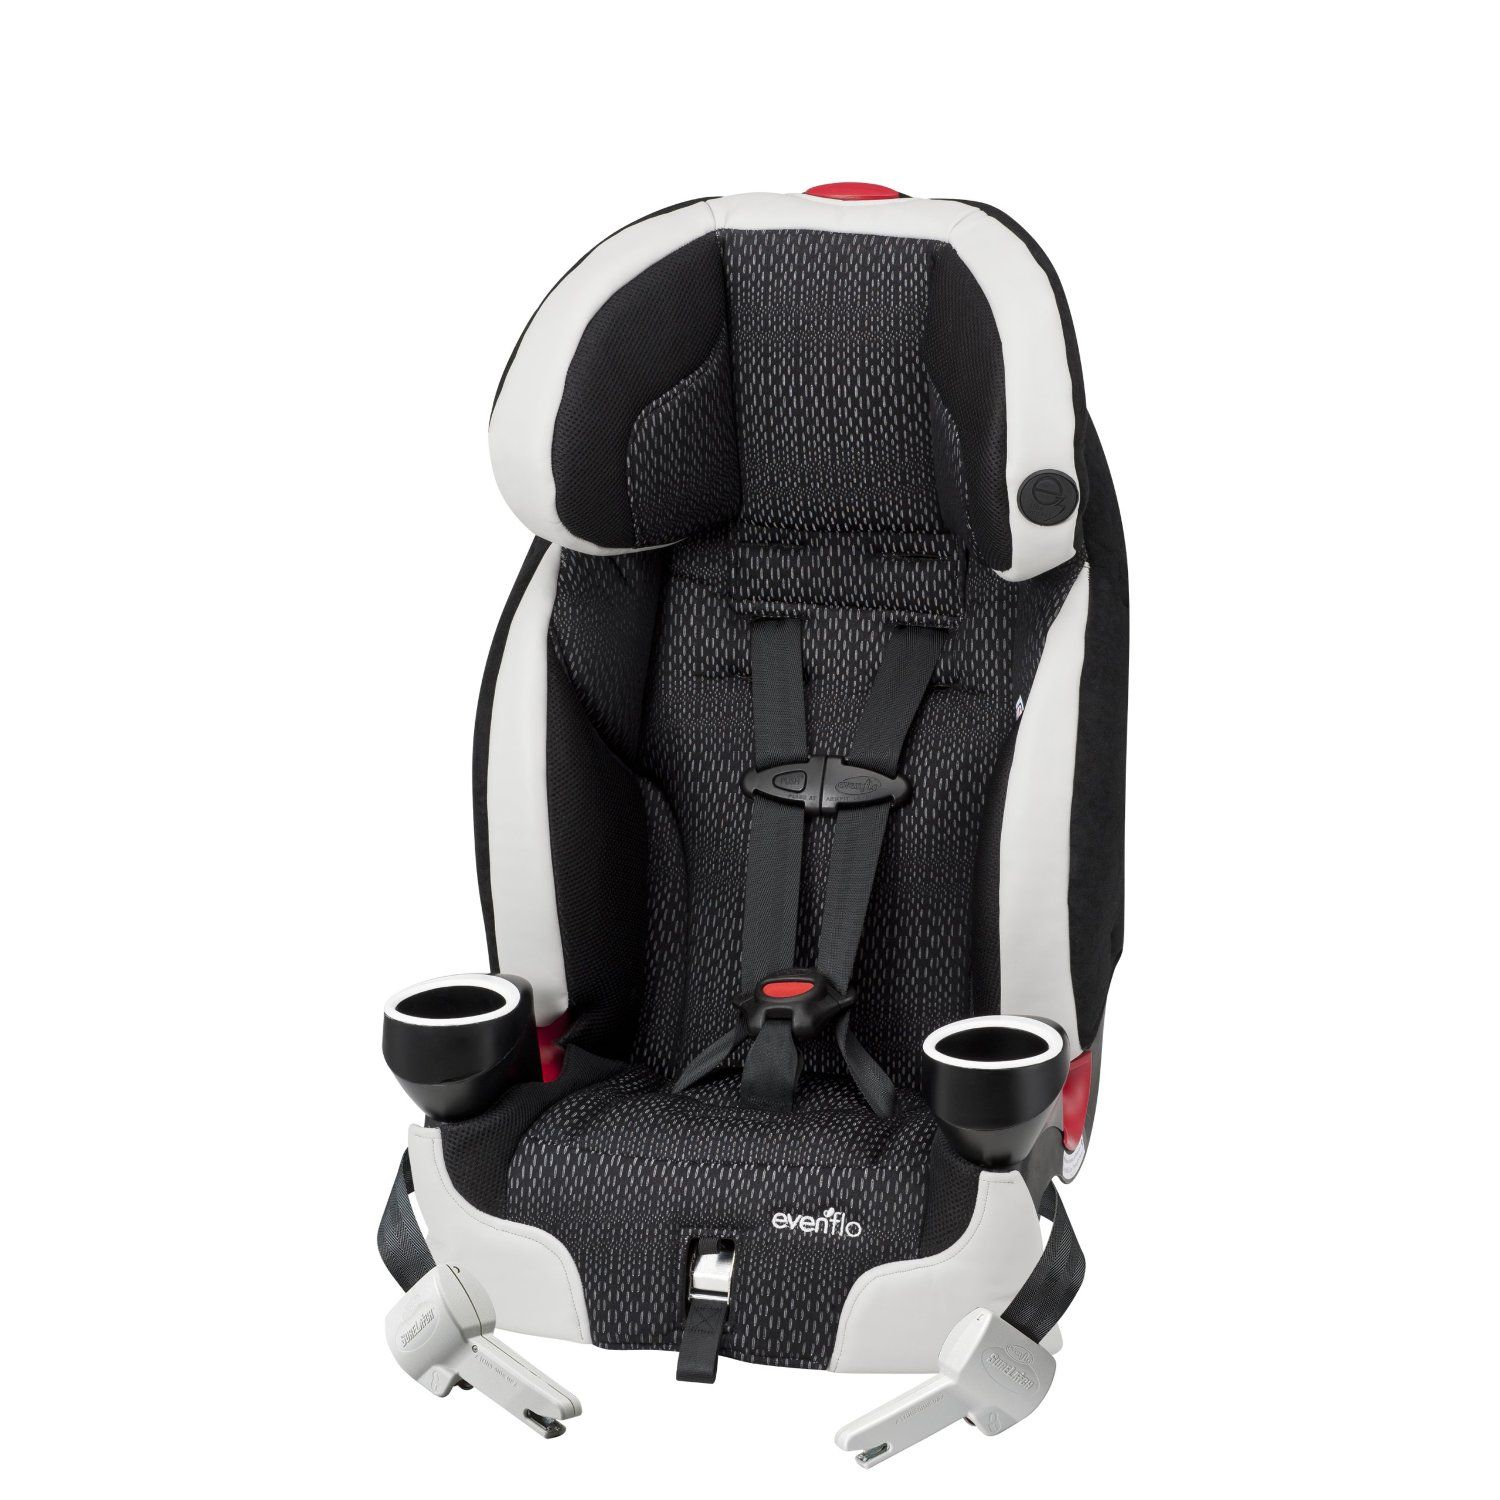 Child safety booster car seats evenflo securekid 400 crawford car seat booster